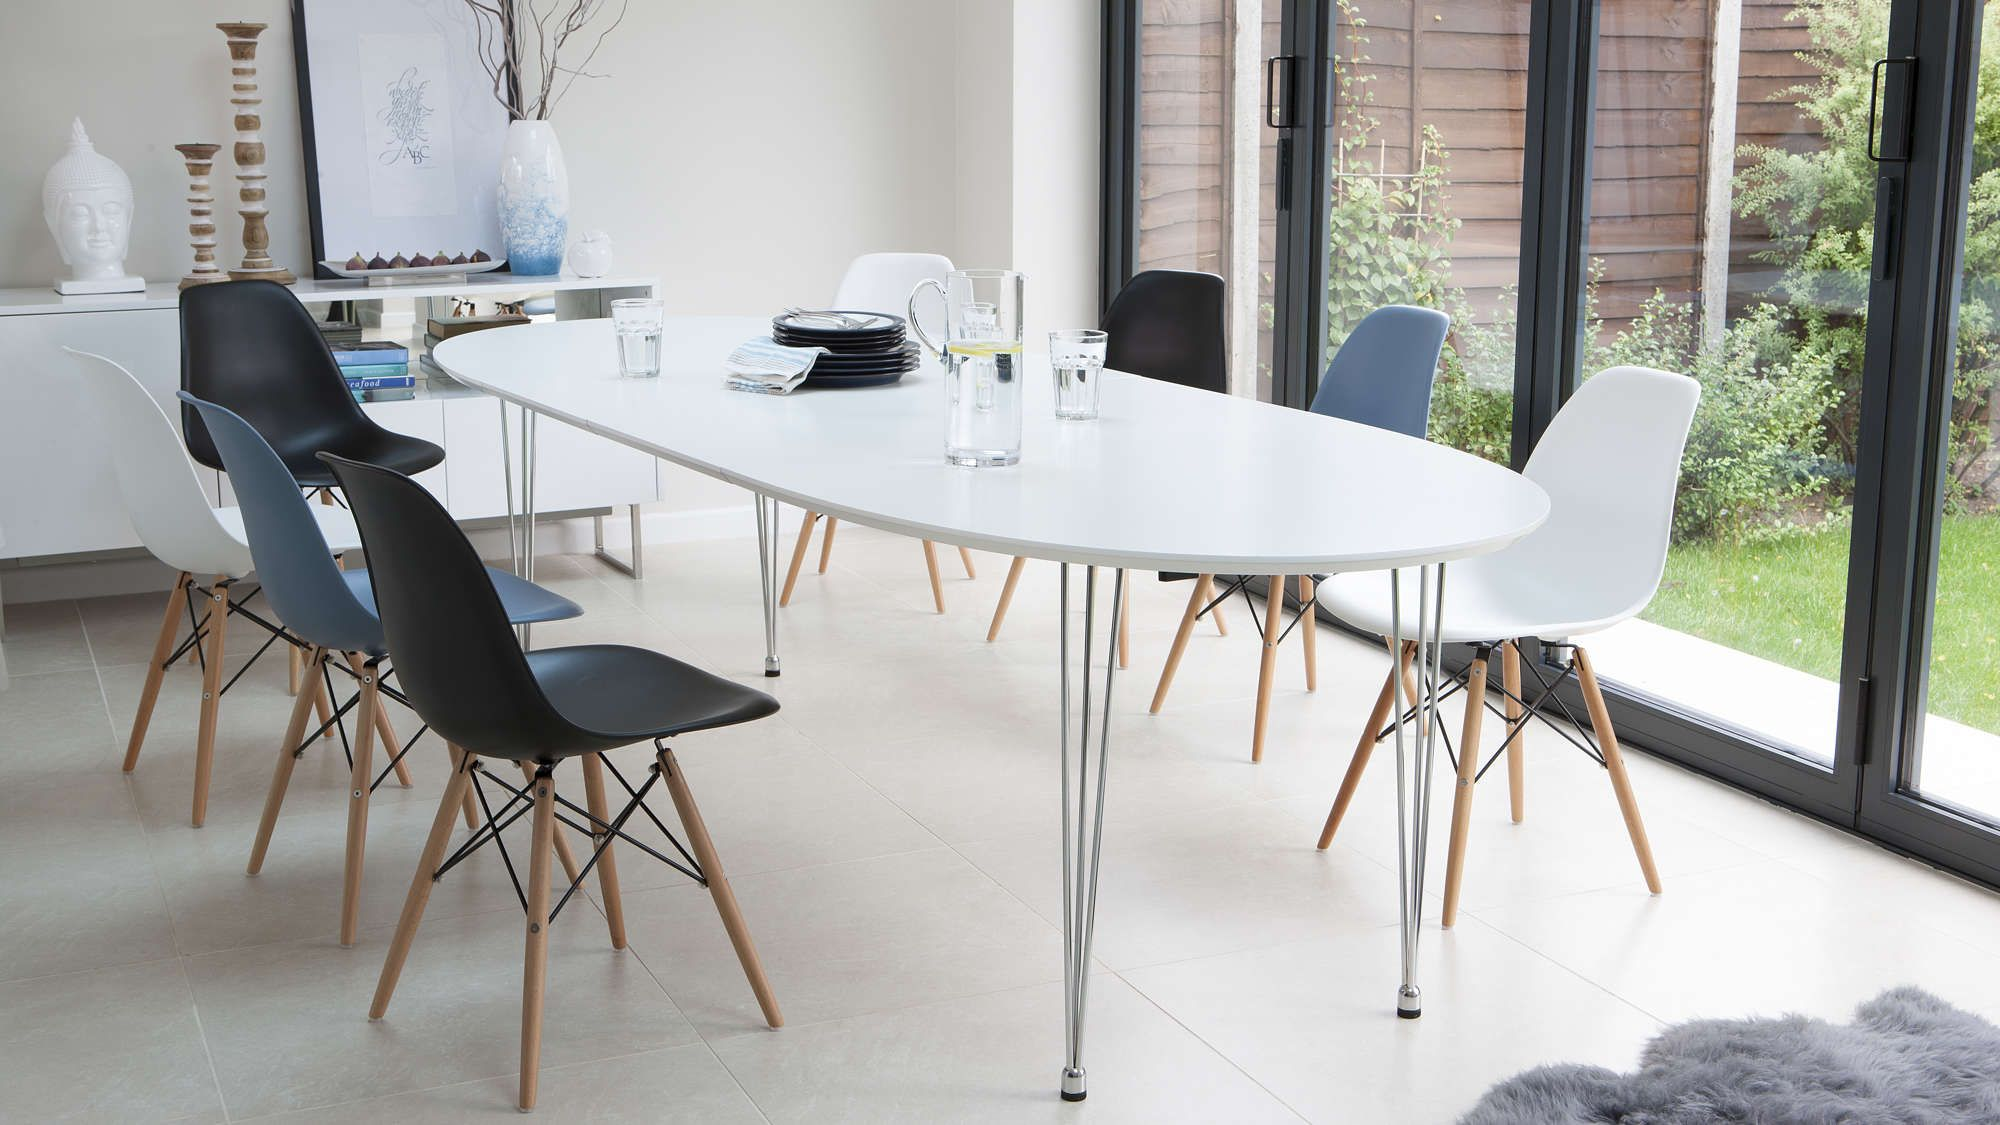 Groovy Ellie White Oval Extending Table Laura Dining Room Oval Theyellowbook Wood Chair Design Ideas Theyellowbookinfo